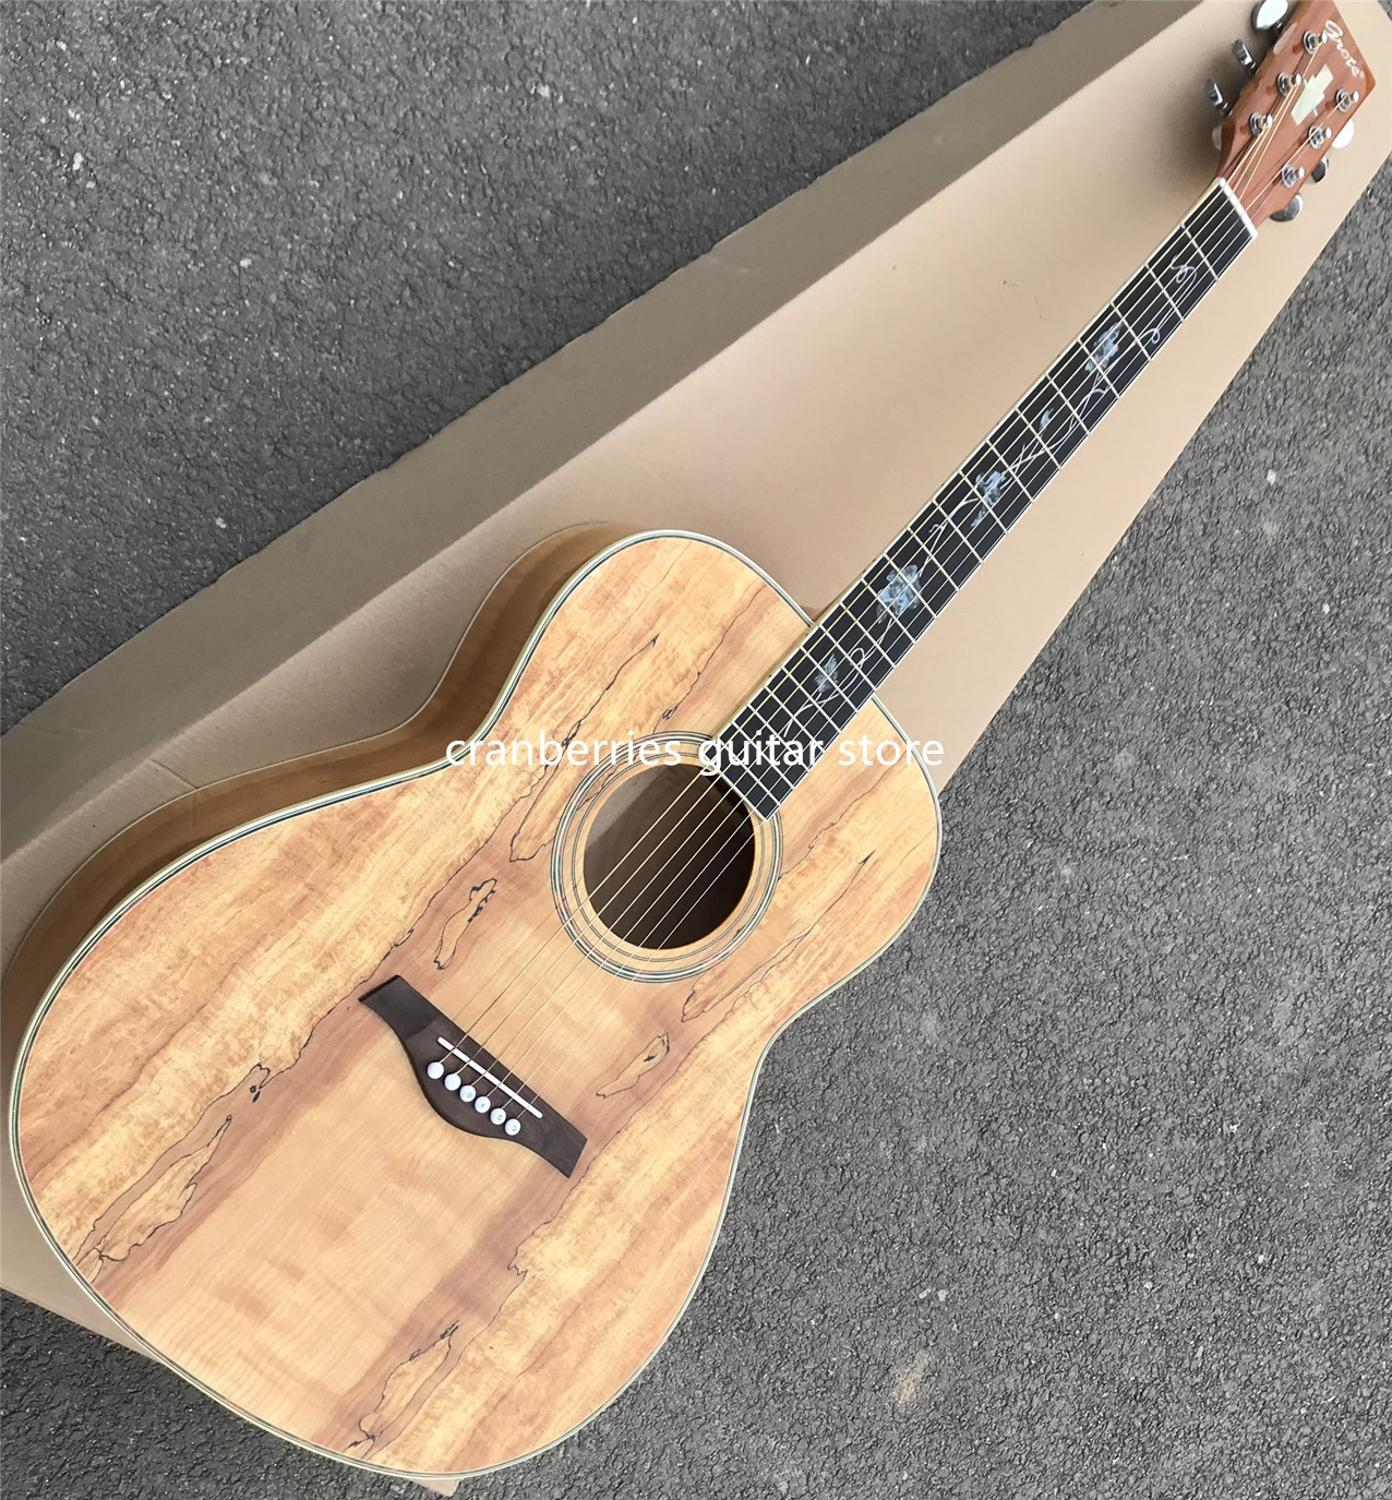 2020 Grote Tendrils Serie,All Koa Wood Acoustic Guitar,real Abalone Inlay Map Grain Top Acoustic Guitar,Free Shipping